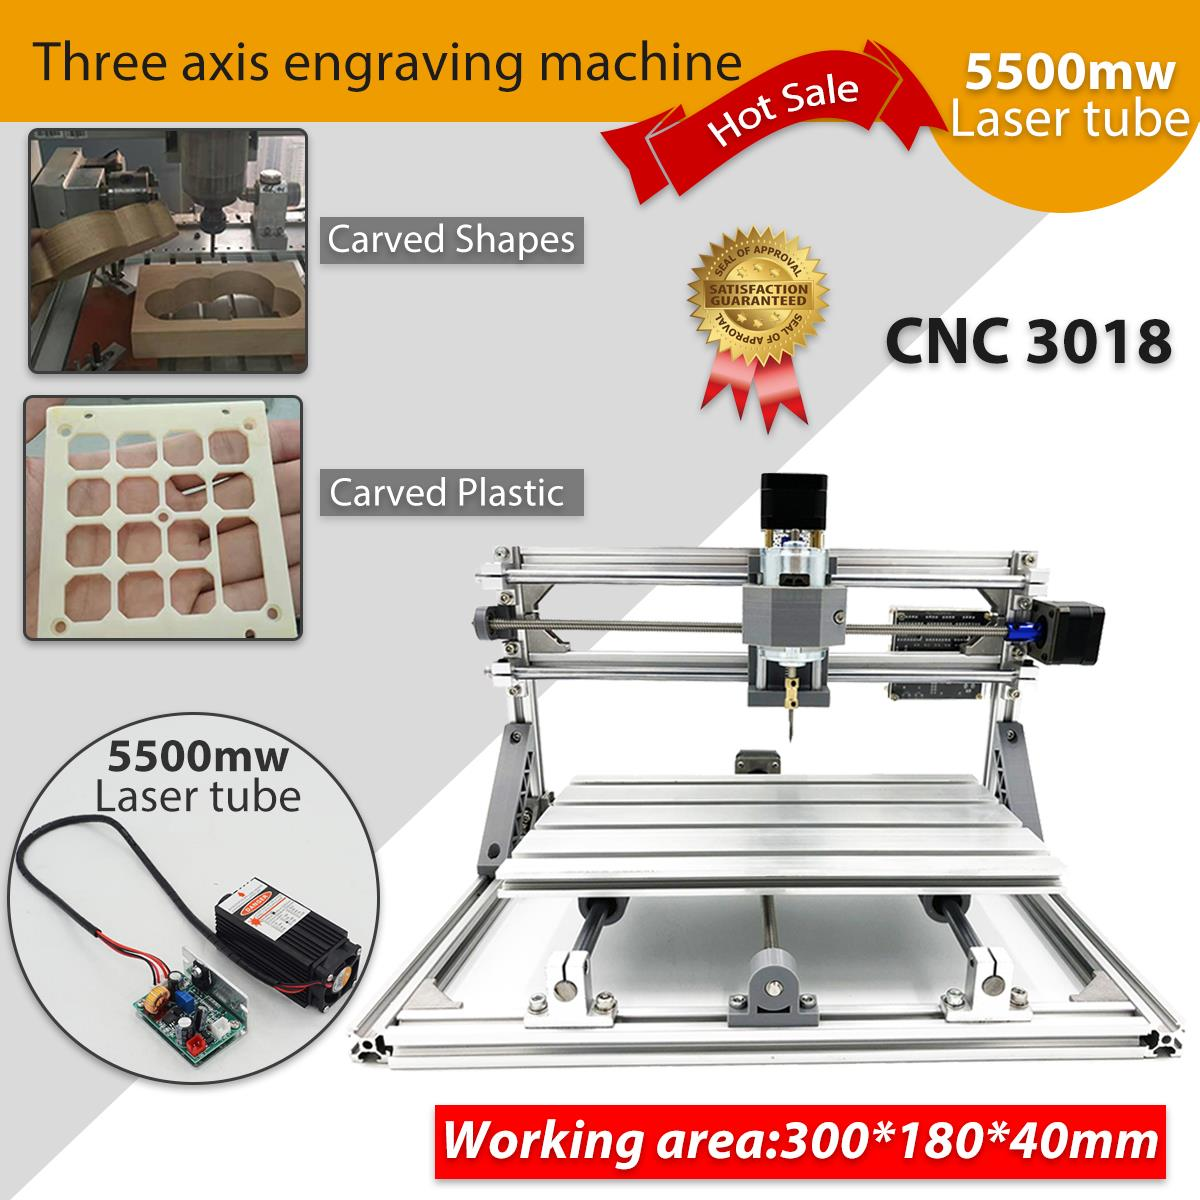 CNC 3018 Mini Engraving Machine 5500mw/2500mw Laser PCB Milling Machine Wood Carving Machine GRBL Control CNC Router Kit cnc 2418 with er11 cnc engraving machine pcb milling machine wood carving machine mini cnc router cnc2418 best advanced toys